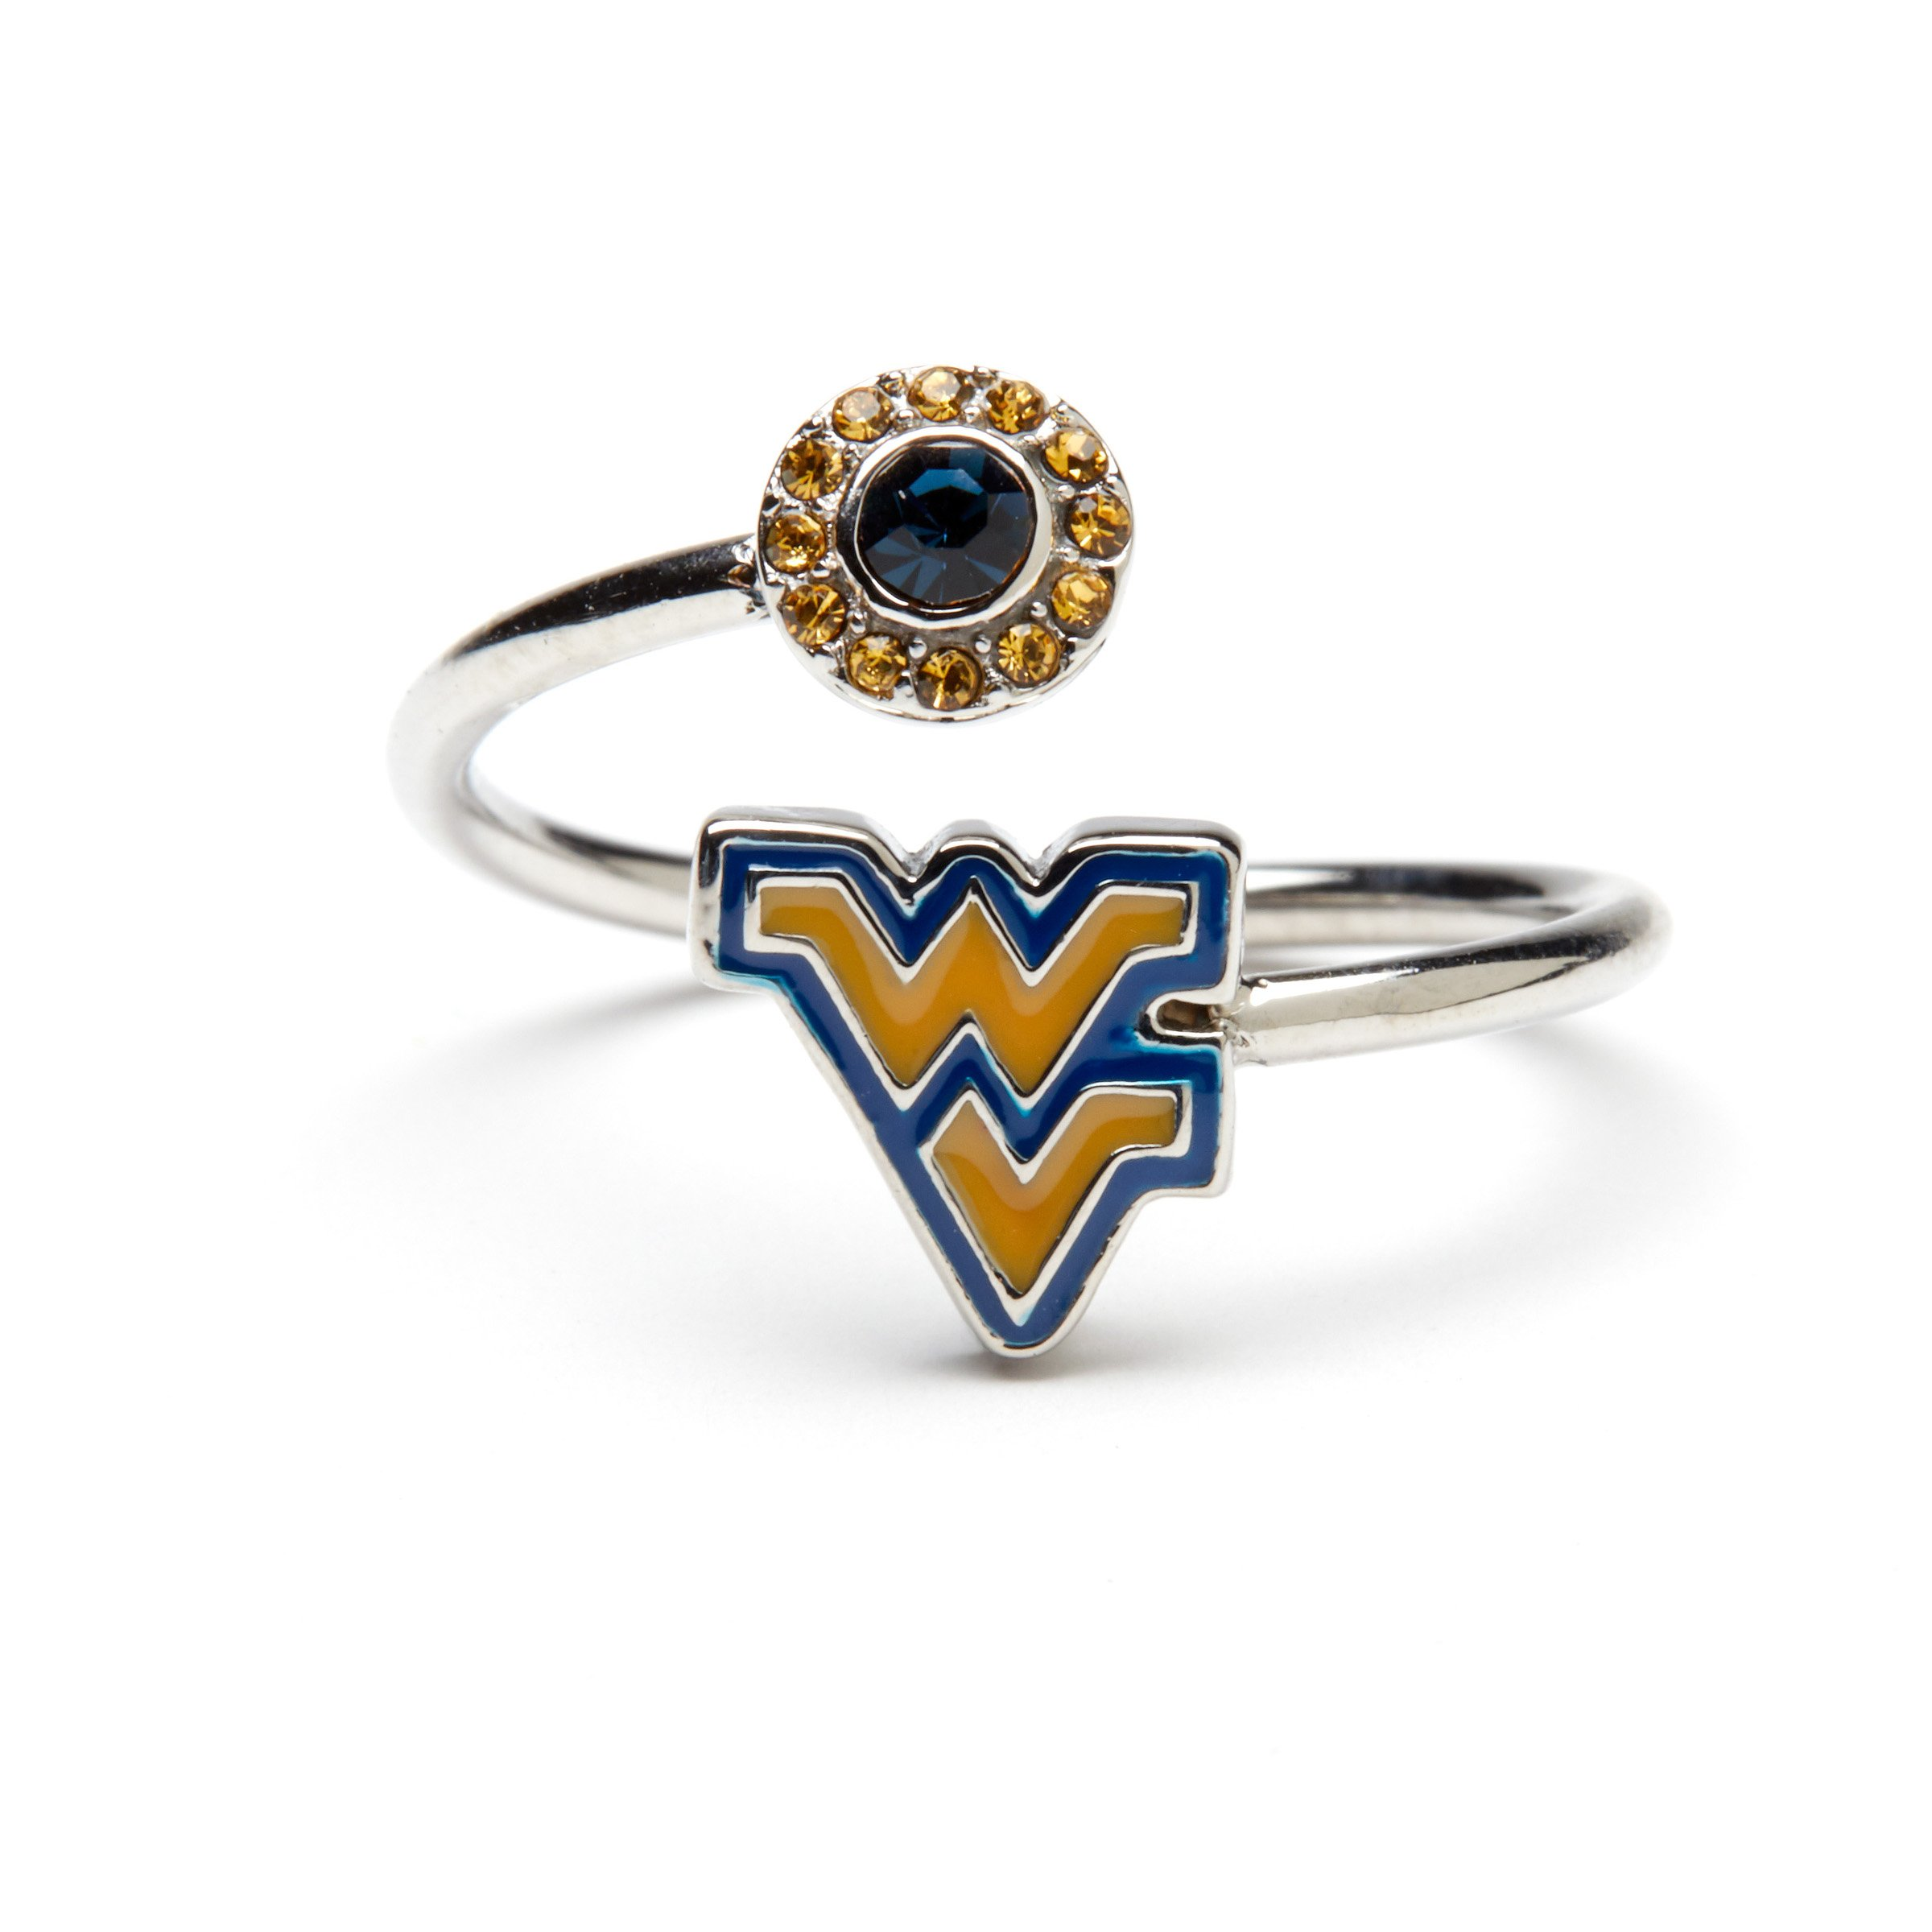 West Virginia University Ring | WVU Mountaineers Ring - Gold and Blue Block WV Ring with Crystals | Officially Licensed West Virginia University Jewelry | WVU Gifts | WVU Jewelry